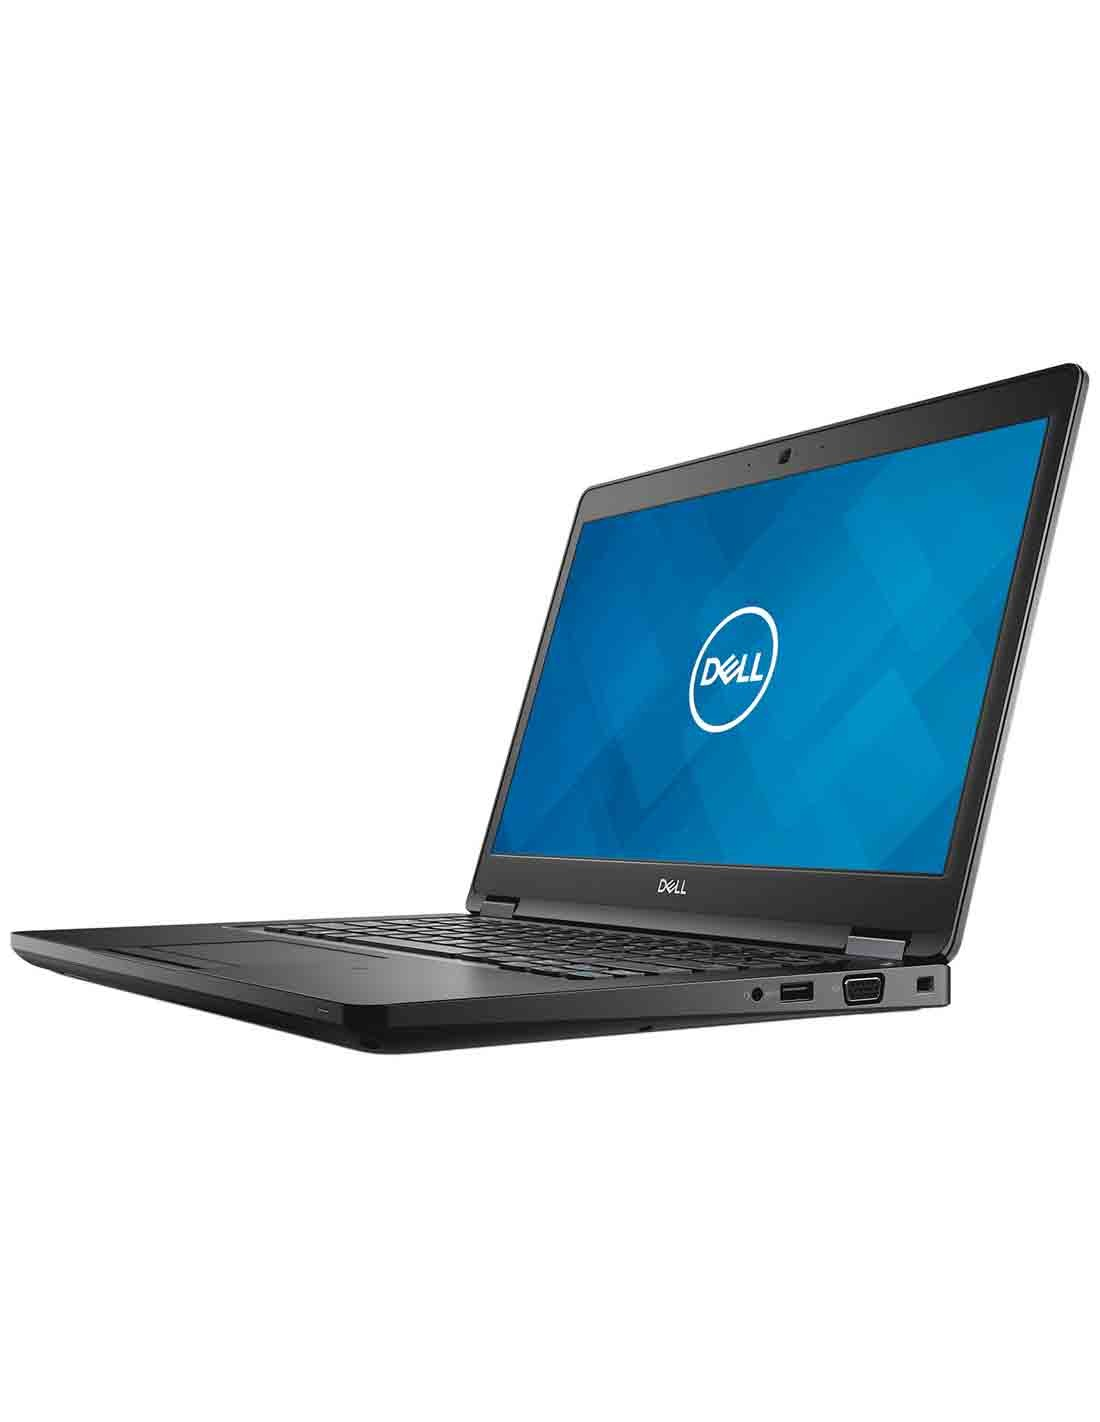 Dell Latitude 5580 Windows 10 Pro 64 8GB images and photos in Dubai computer store